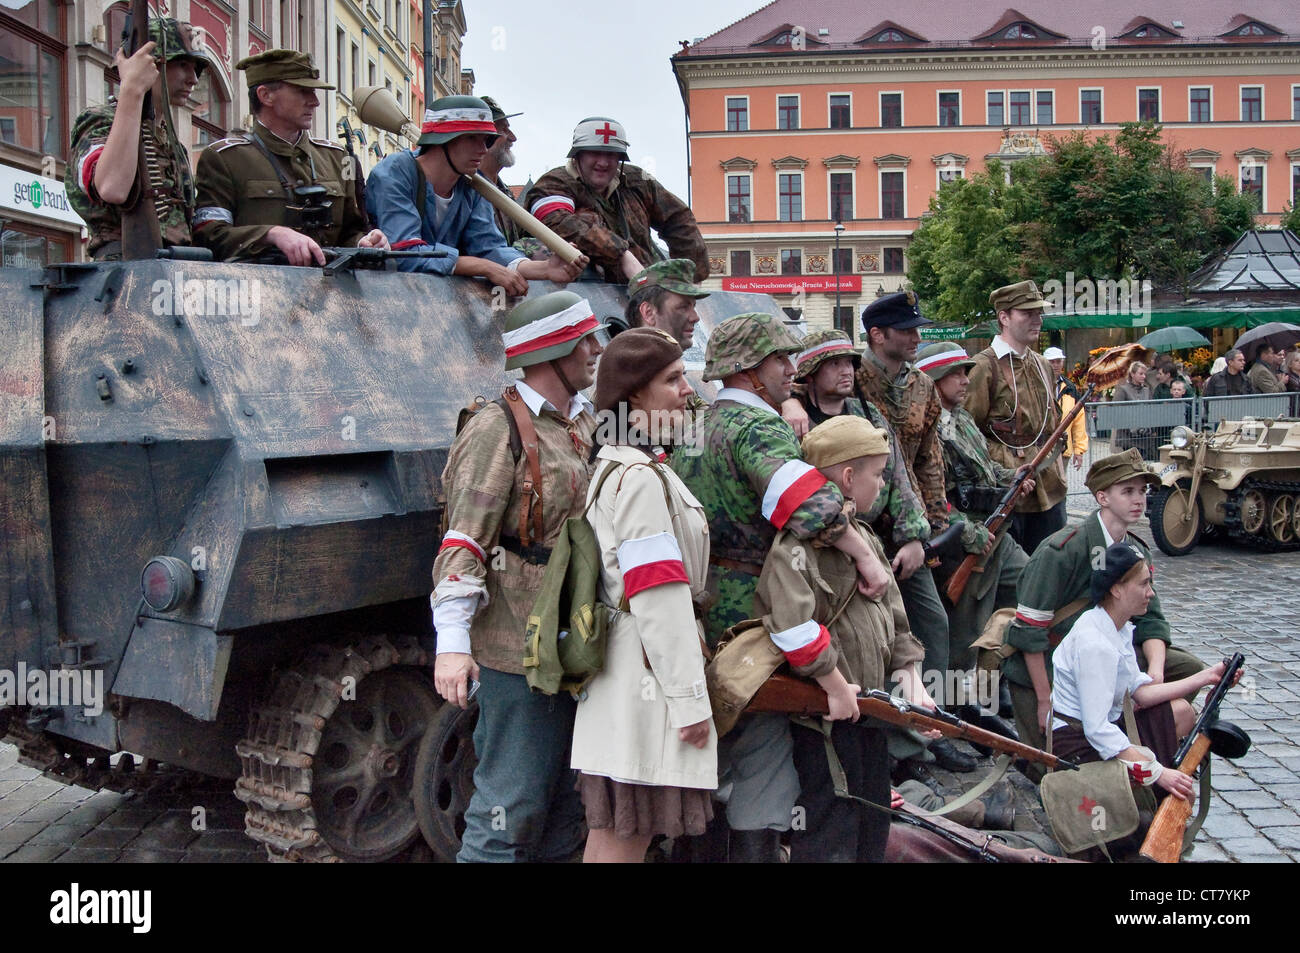 Home Army troops re-enactors posing for pictures after 1944 Warsaw Uprising re-enactment in Wroclaw, Poland - Stock Image